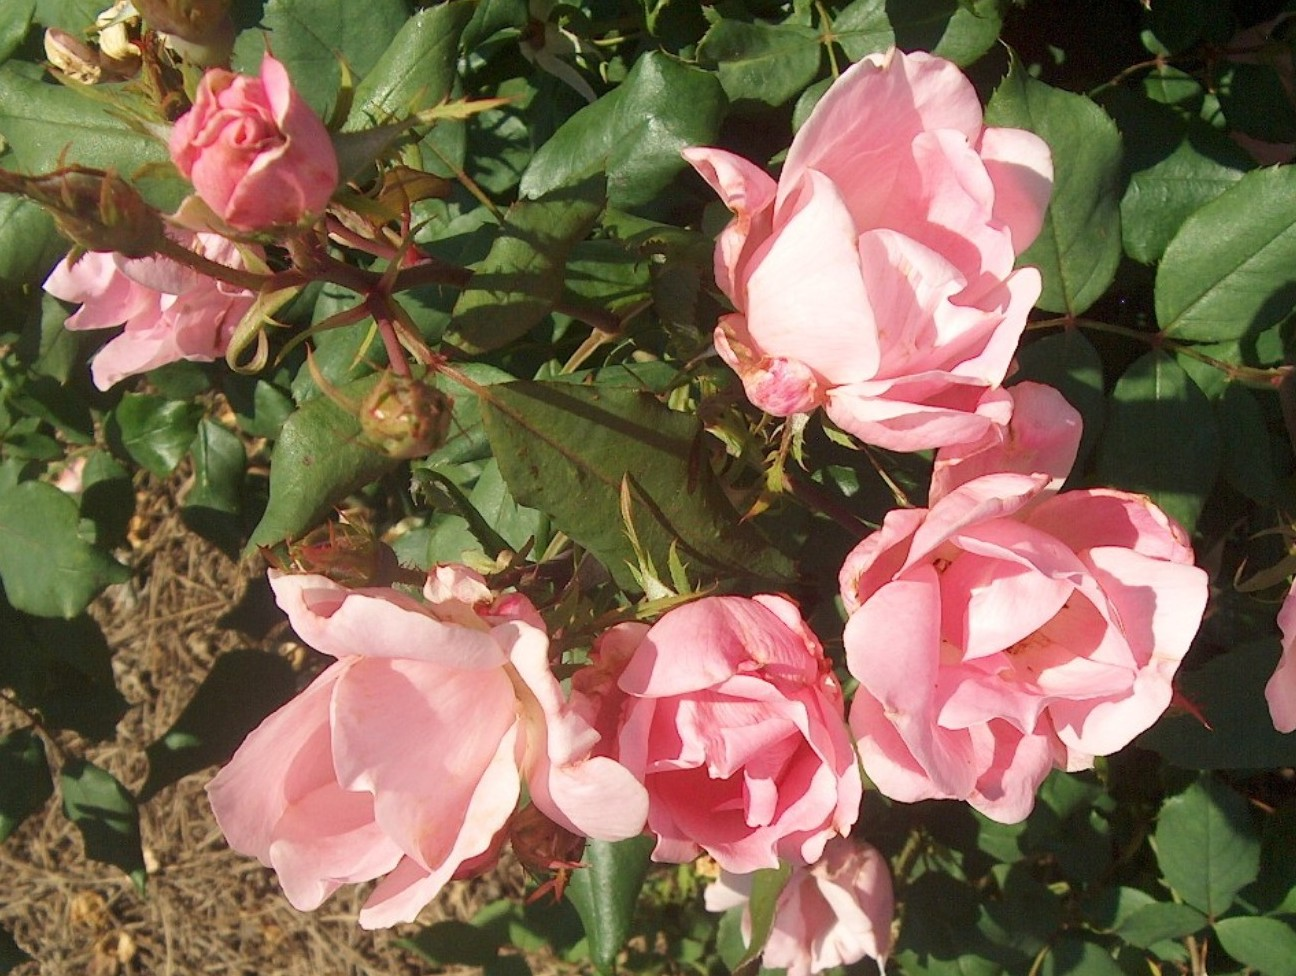 Rosa 'Blushing Knock Out' / Rosa 'Blushing Knock Out'